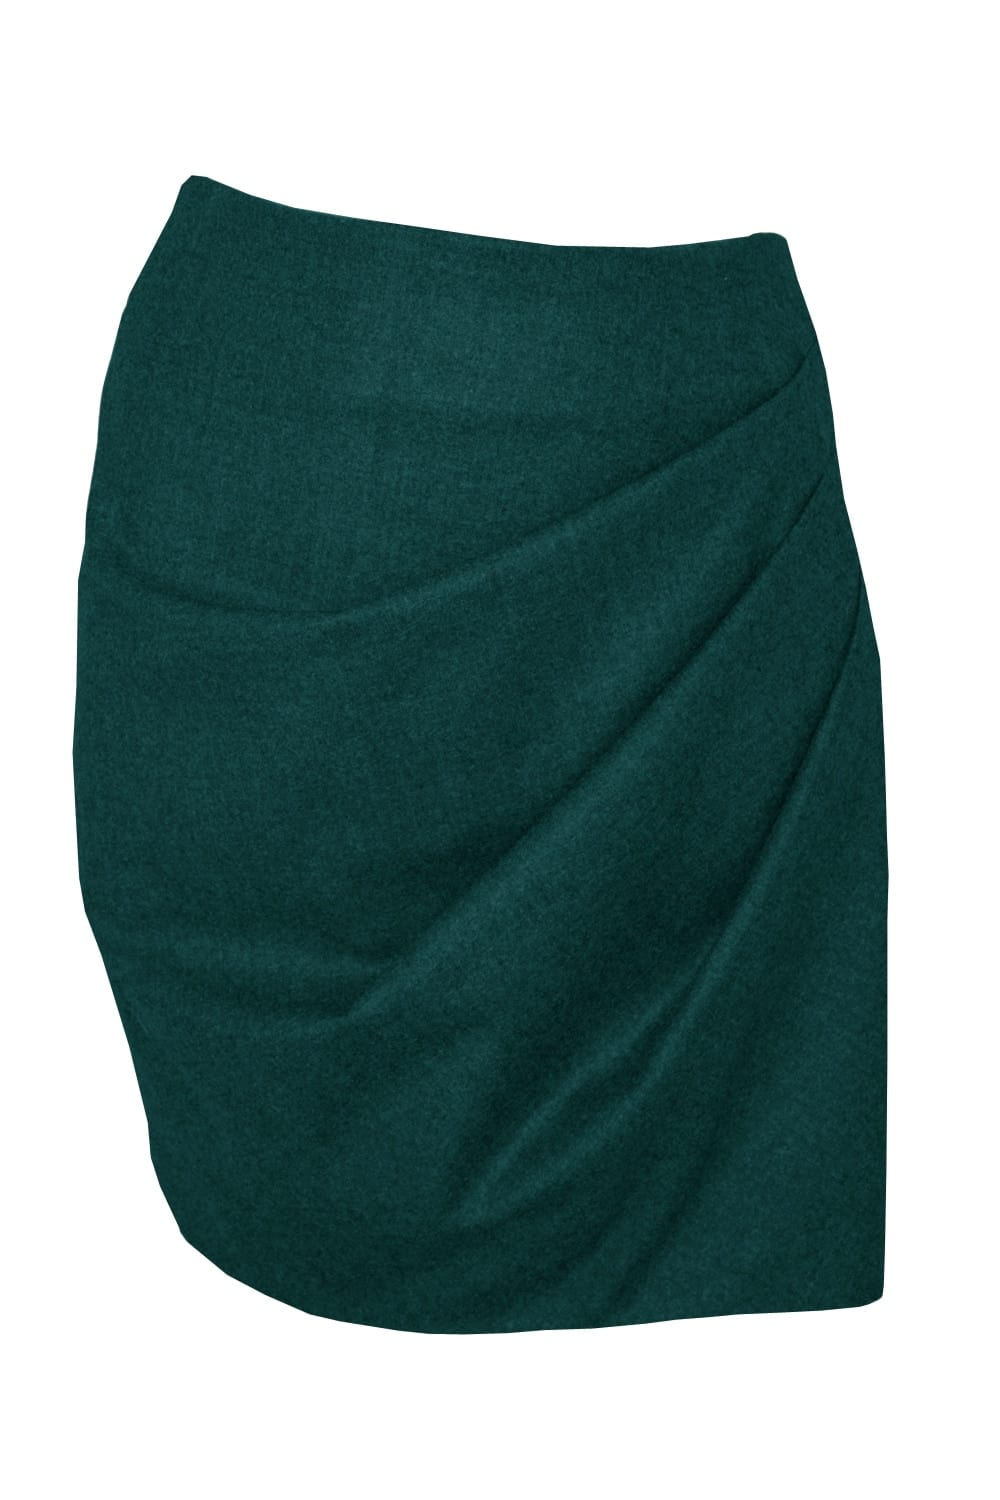 Short skirt draped on the front in green flannel.